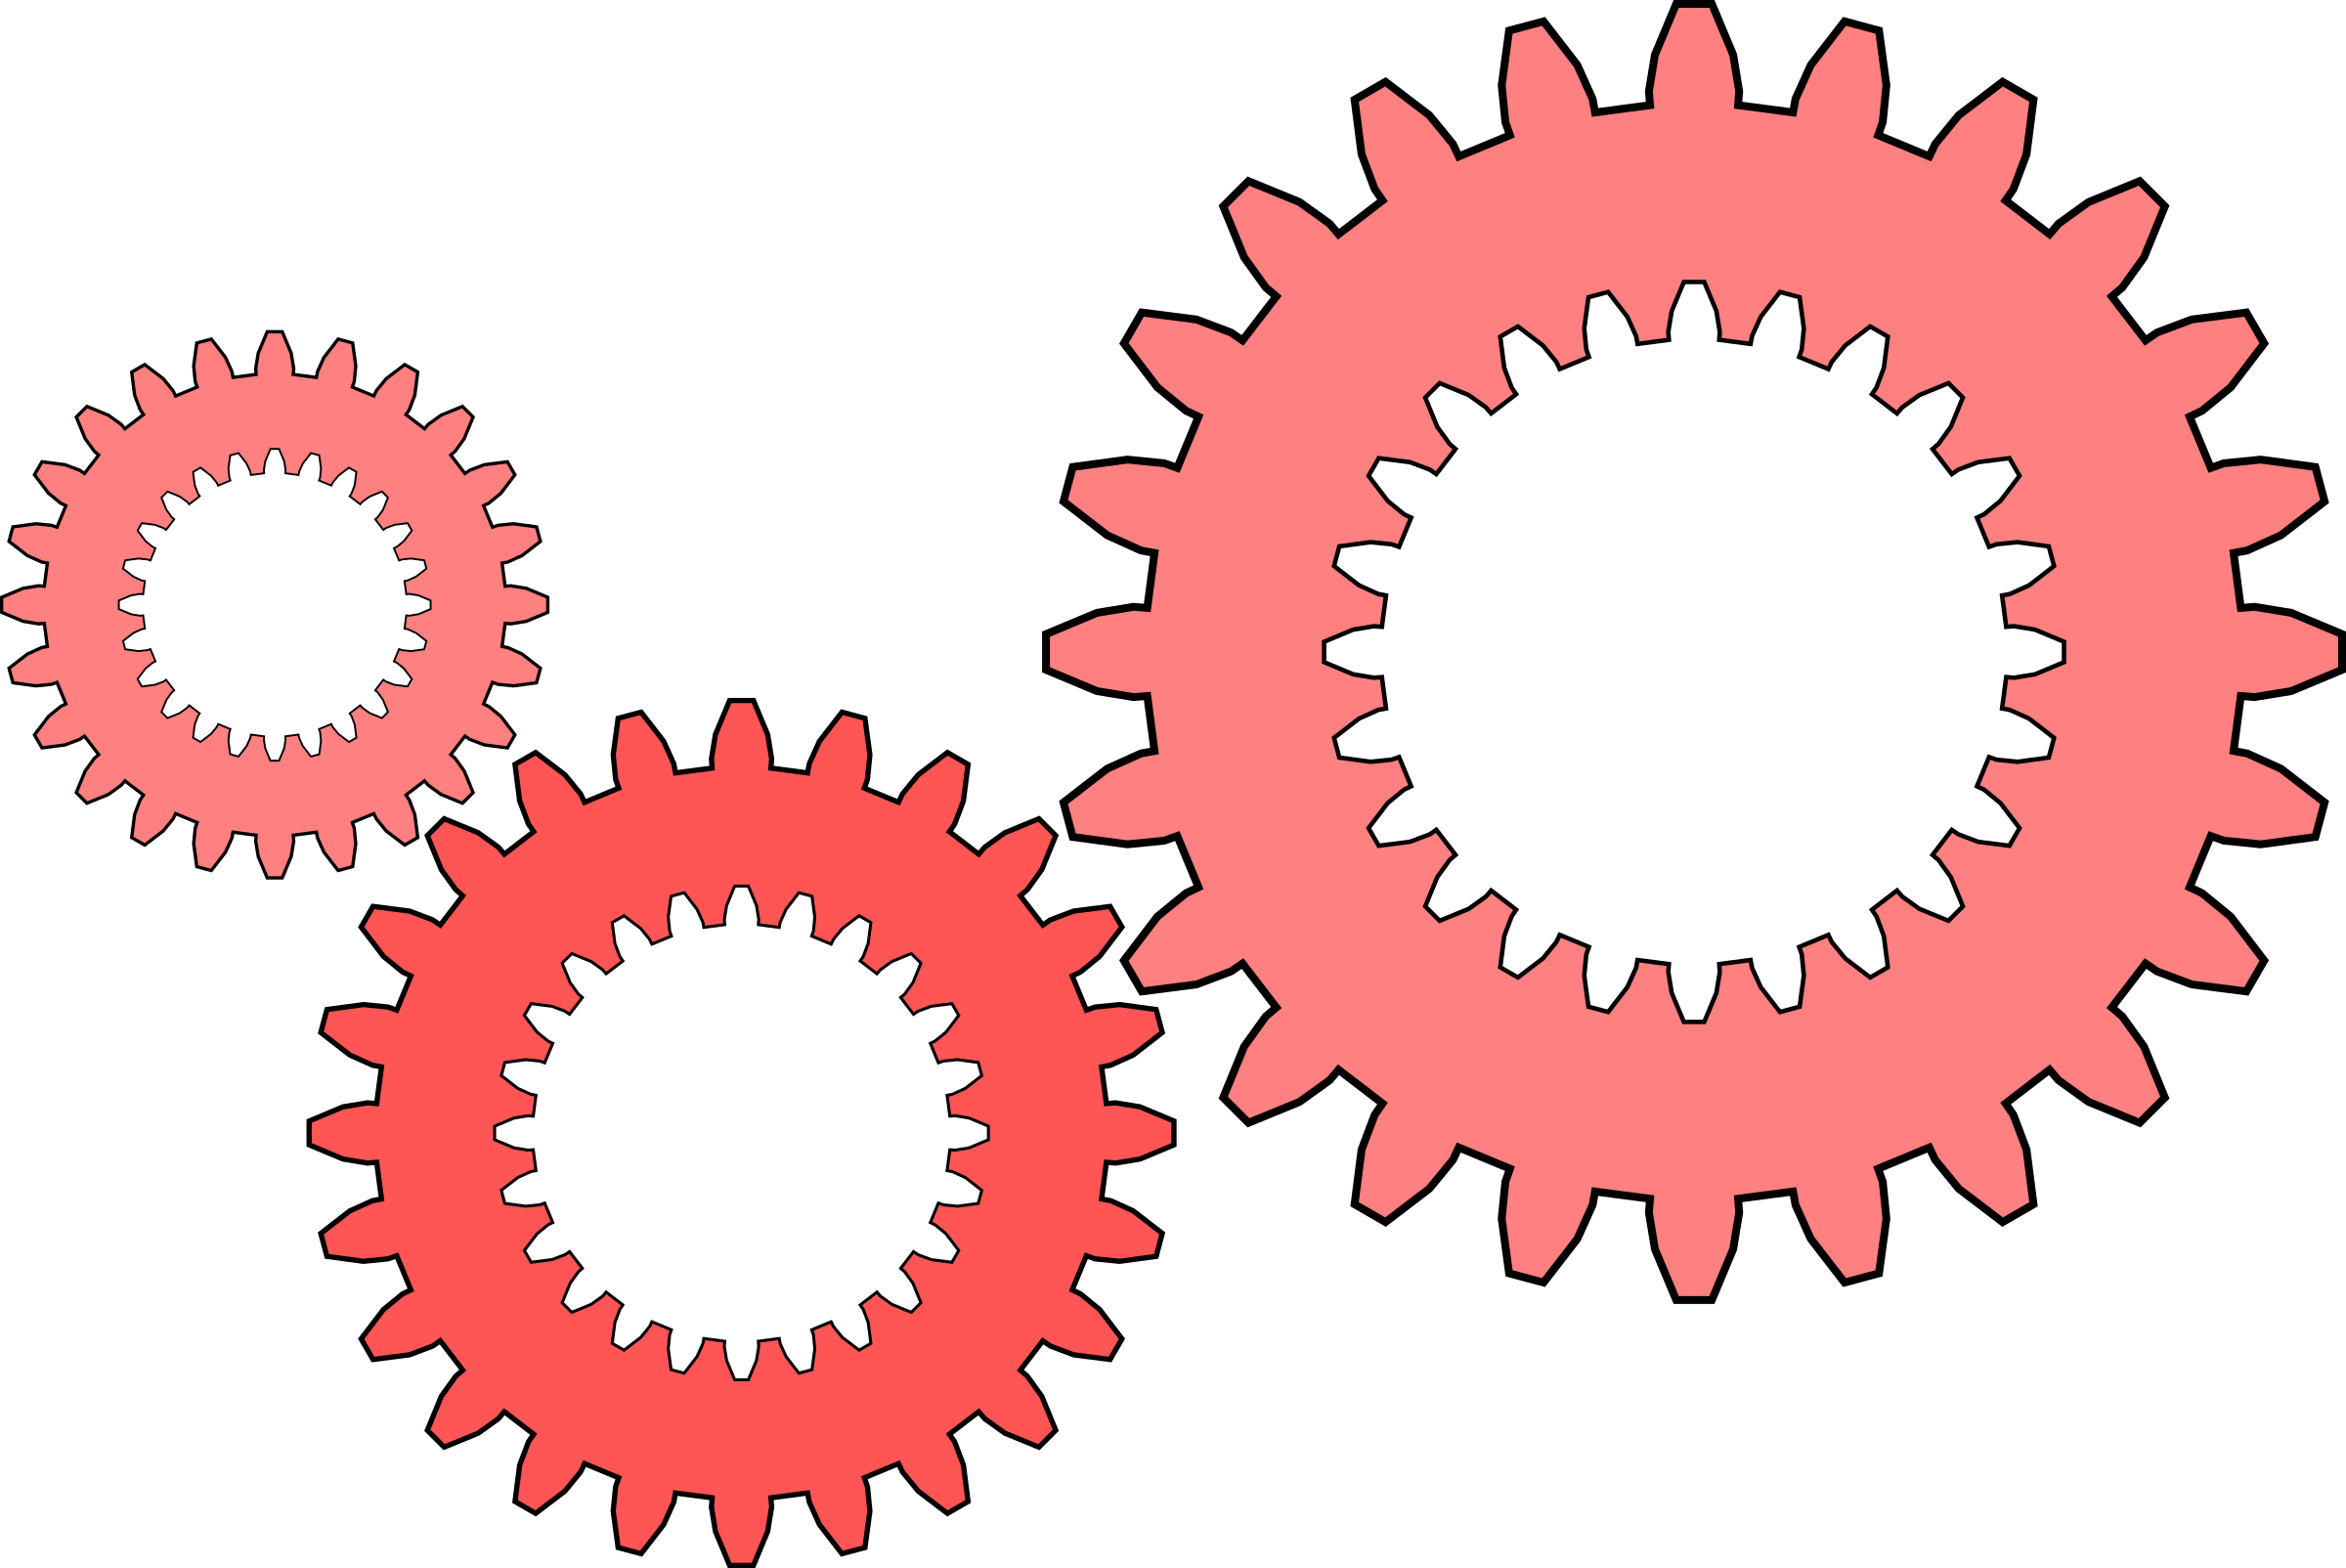 Gear clipart red. Gears big image png